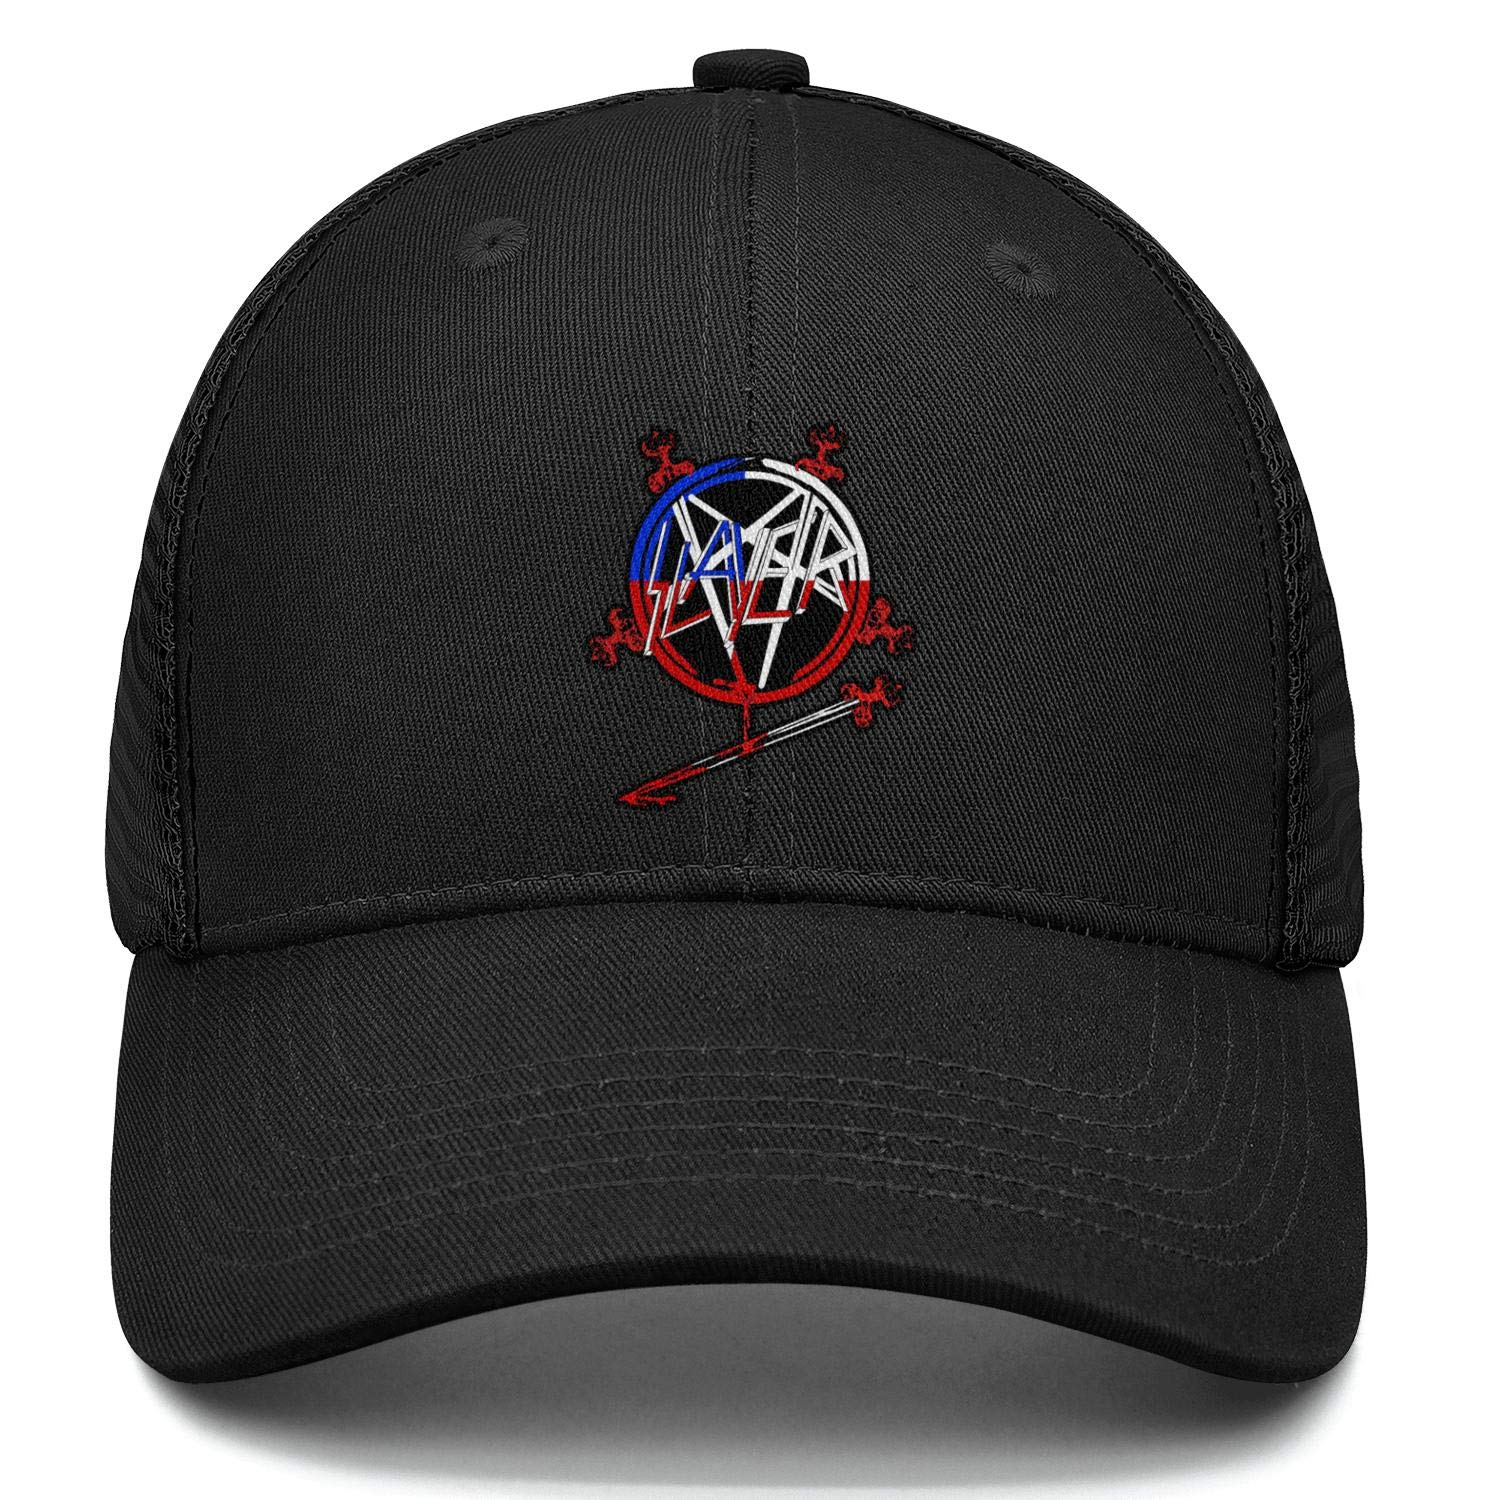 Womens Mens Slayer-Eagle-Logos-All Cotton Trucker Mesh Cap Adjustable Snapback Summer Hat